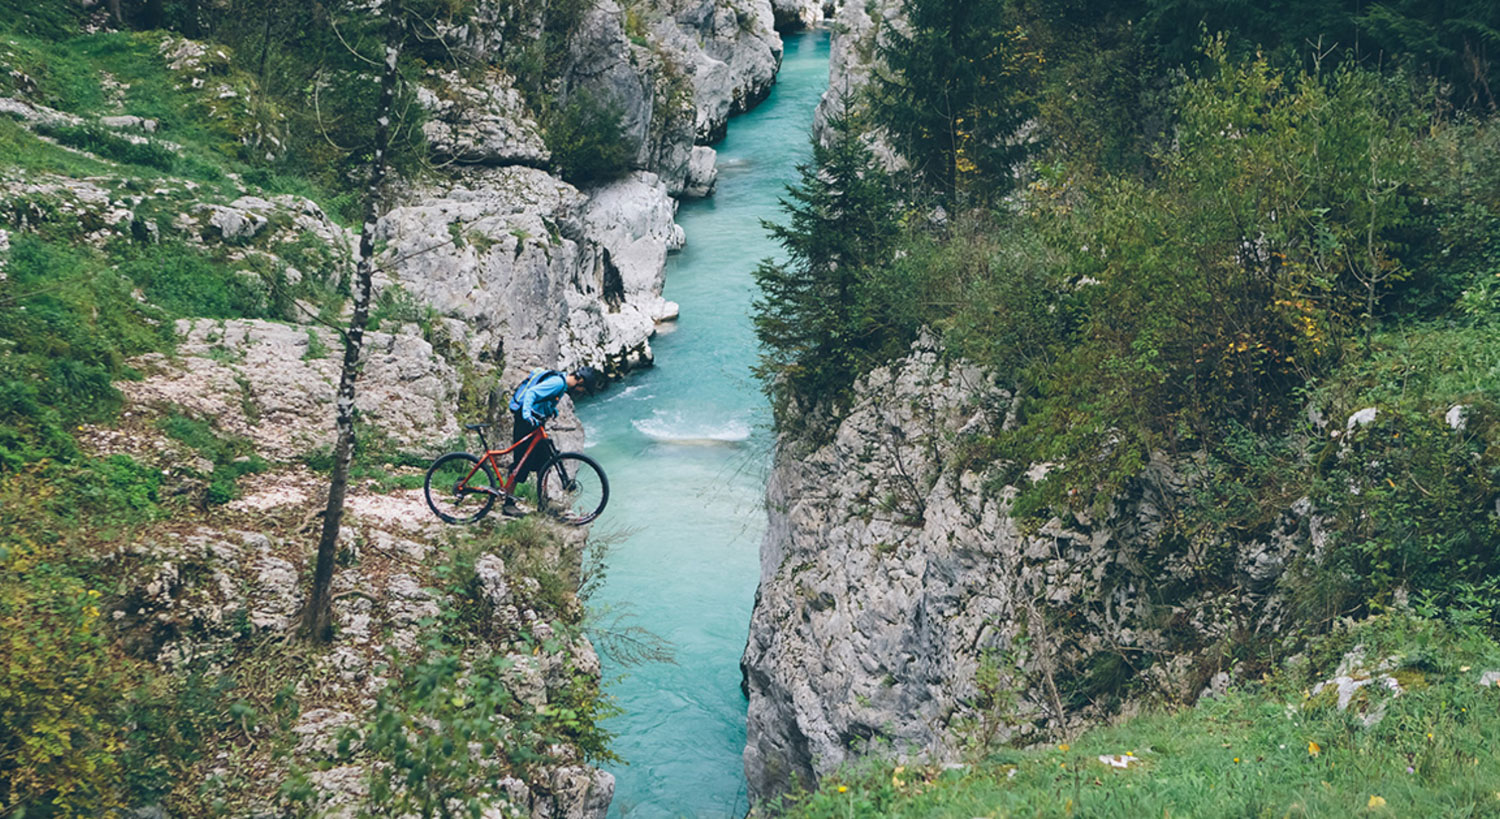 drone_filming_aerial_imagery_north_wales_drone_slovenia-5.jpg